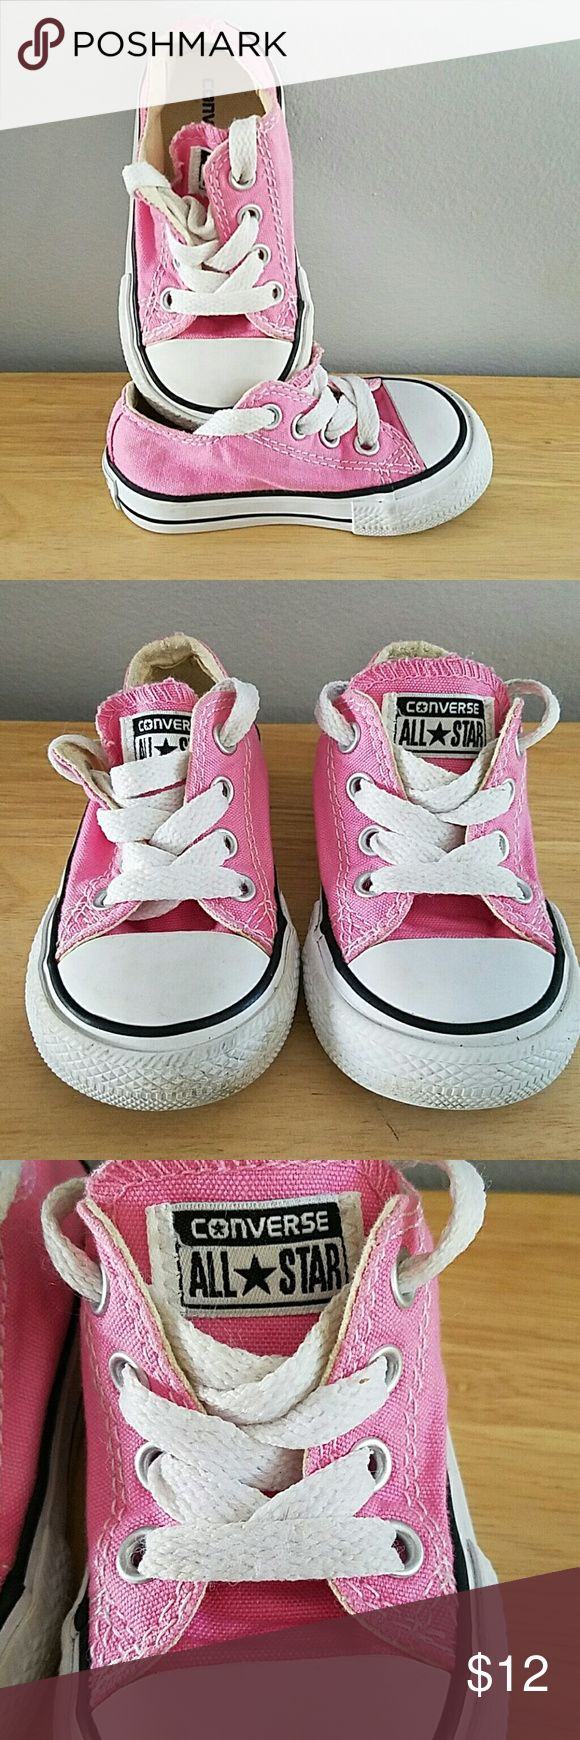 Toddler girls Converse Sneakers Toddlers Size 4   PINK Converse sneaks.   Please see pictures. Mild wear on front on left shoes. Price reflects this.   Soles and laces are clean.   Original owner, these were outgrown.   FREE GIFT WITH PURCHASE   Bundle! Save! Converse Shoes Sneakers